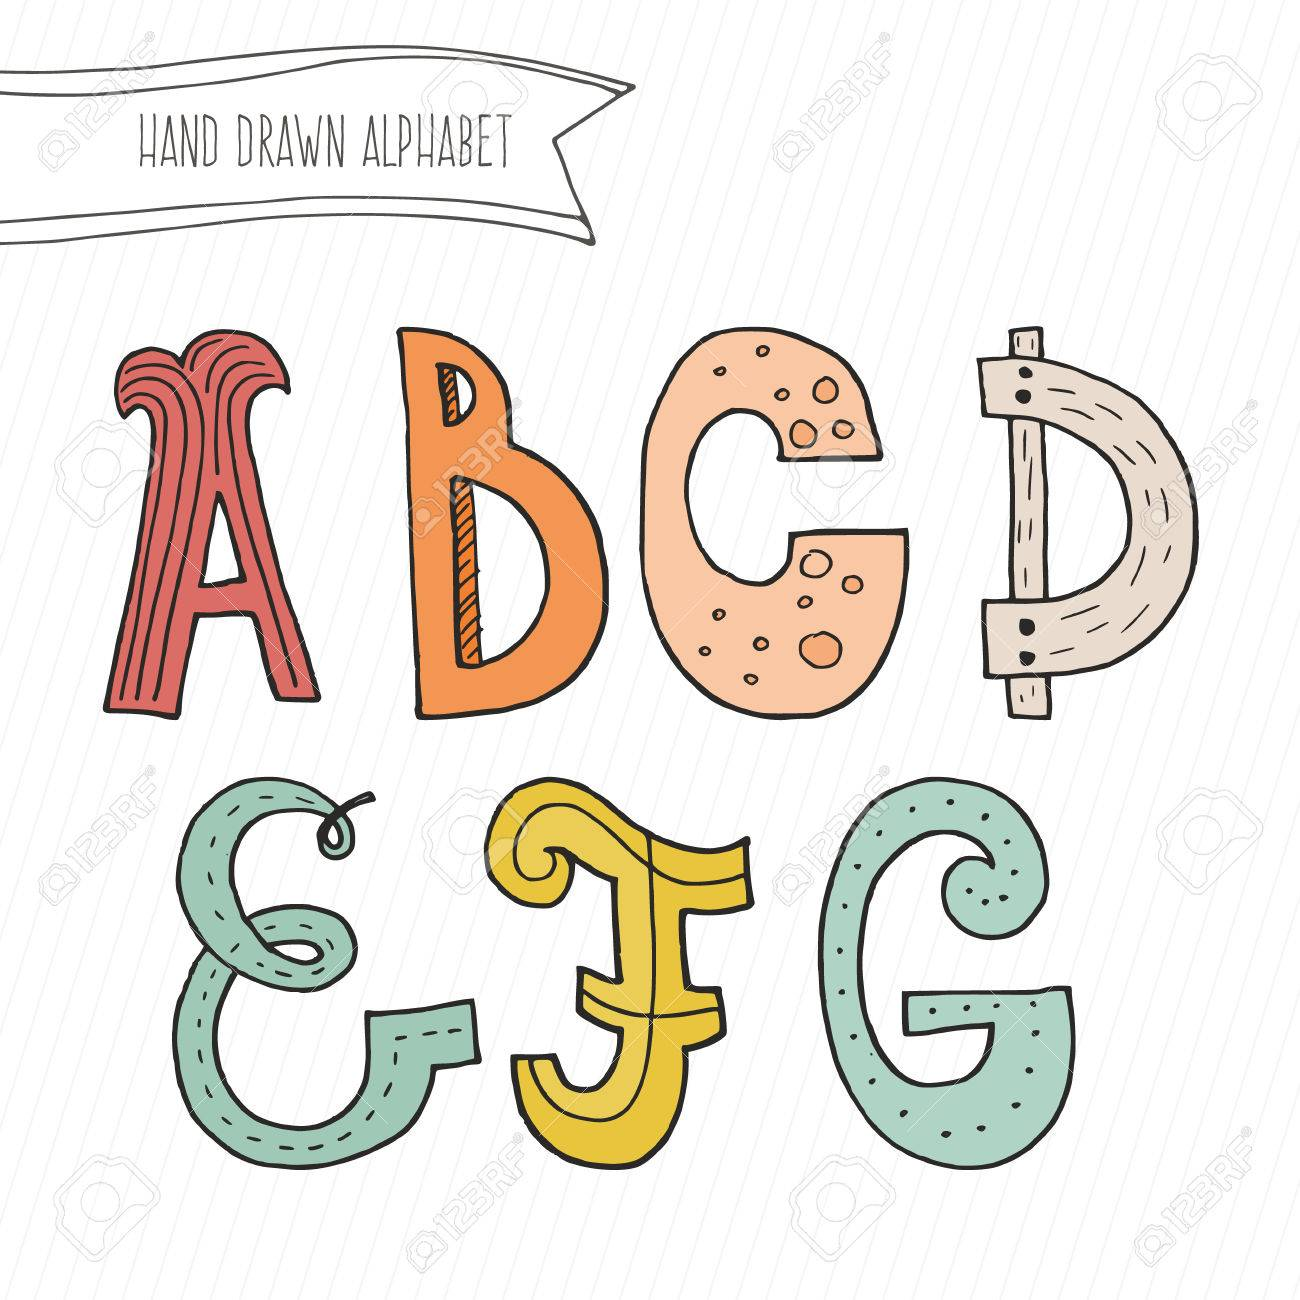 Cute hand drawn alphabet for kids made in vector  Doodle letters